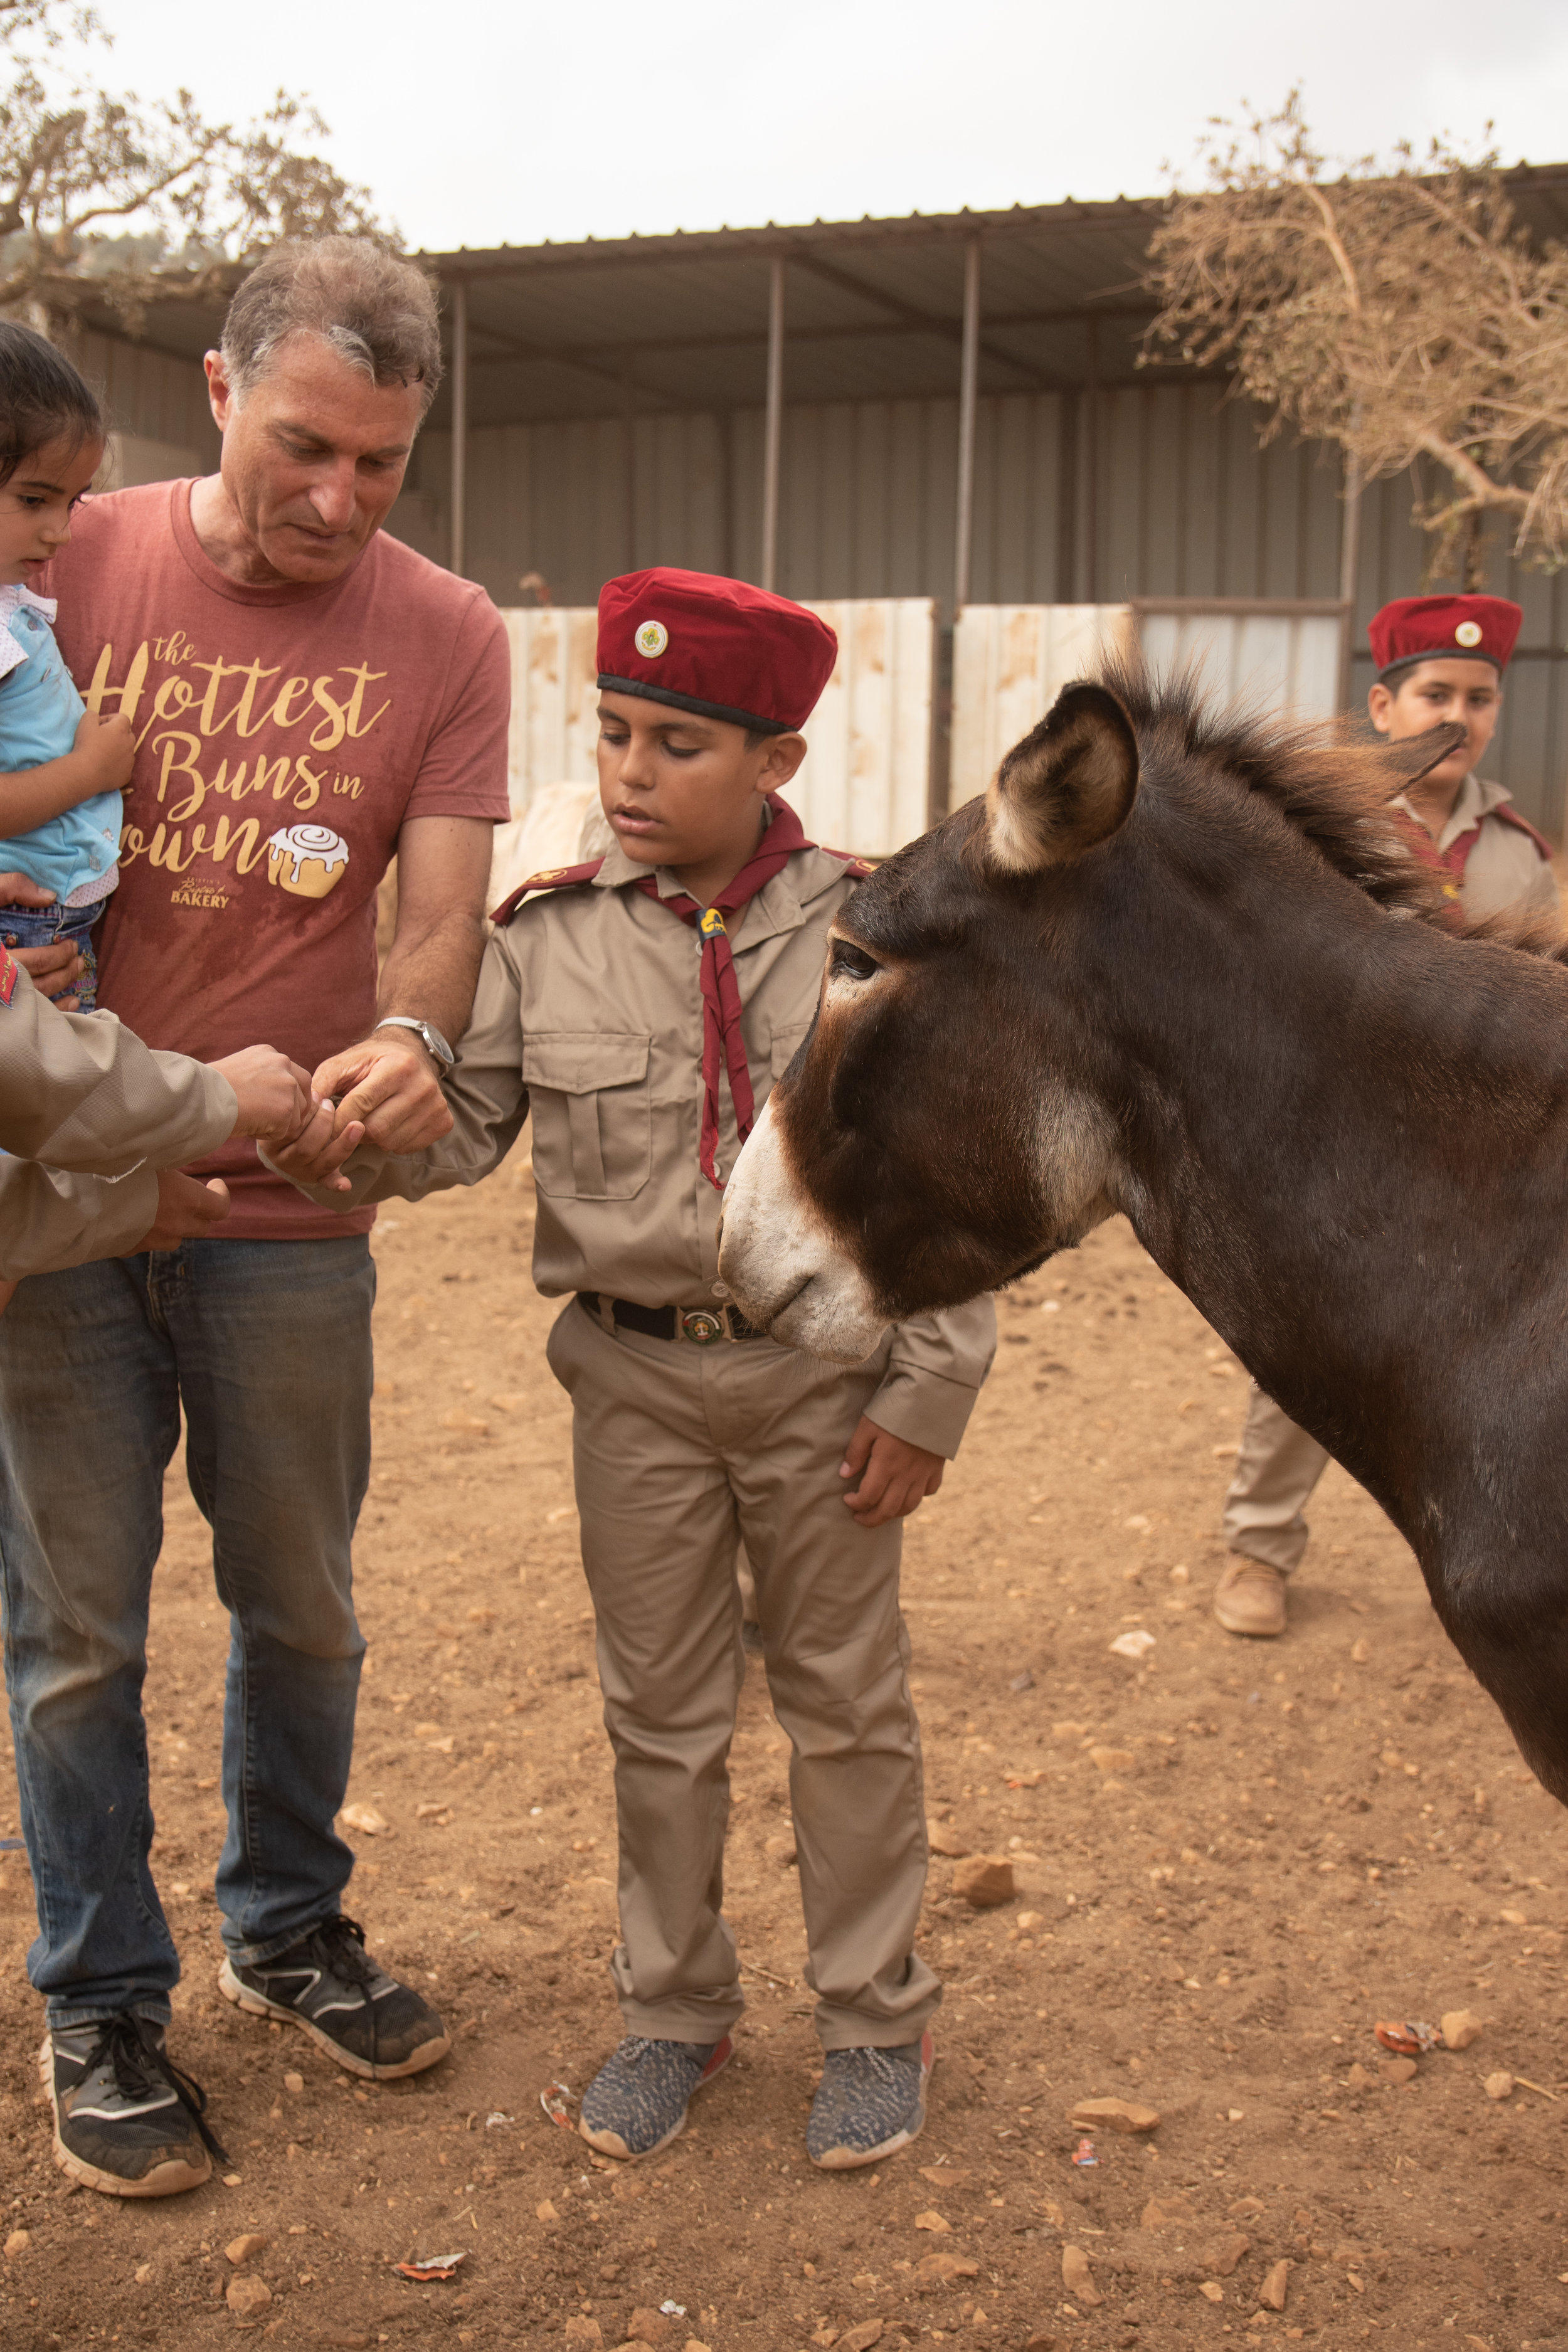 Maad shows a scout how to feed a donkey without losing your fingers